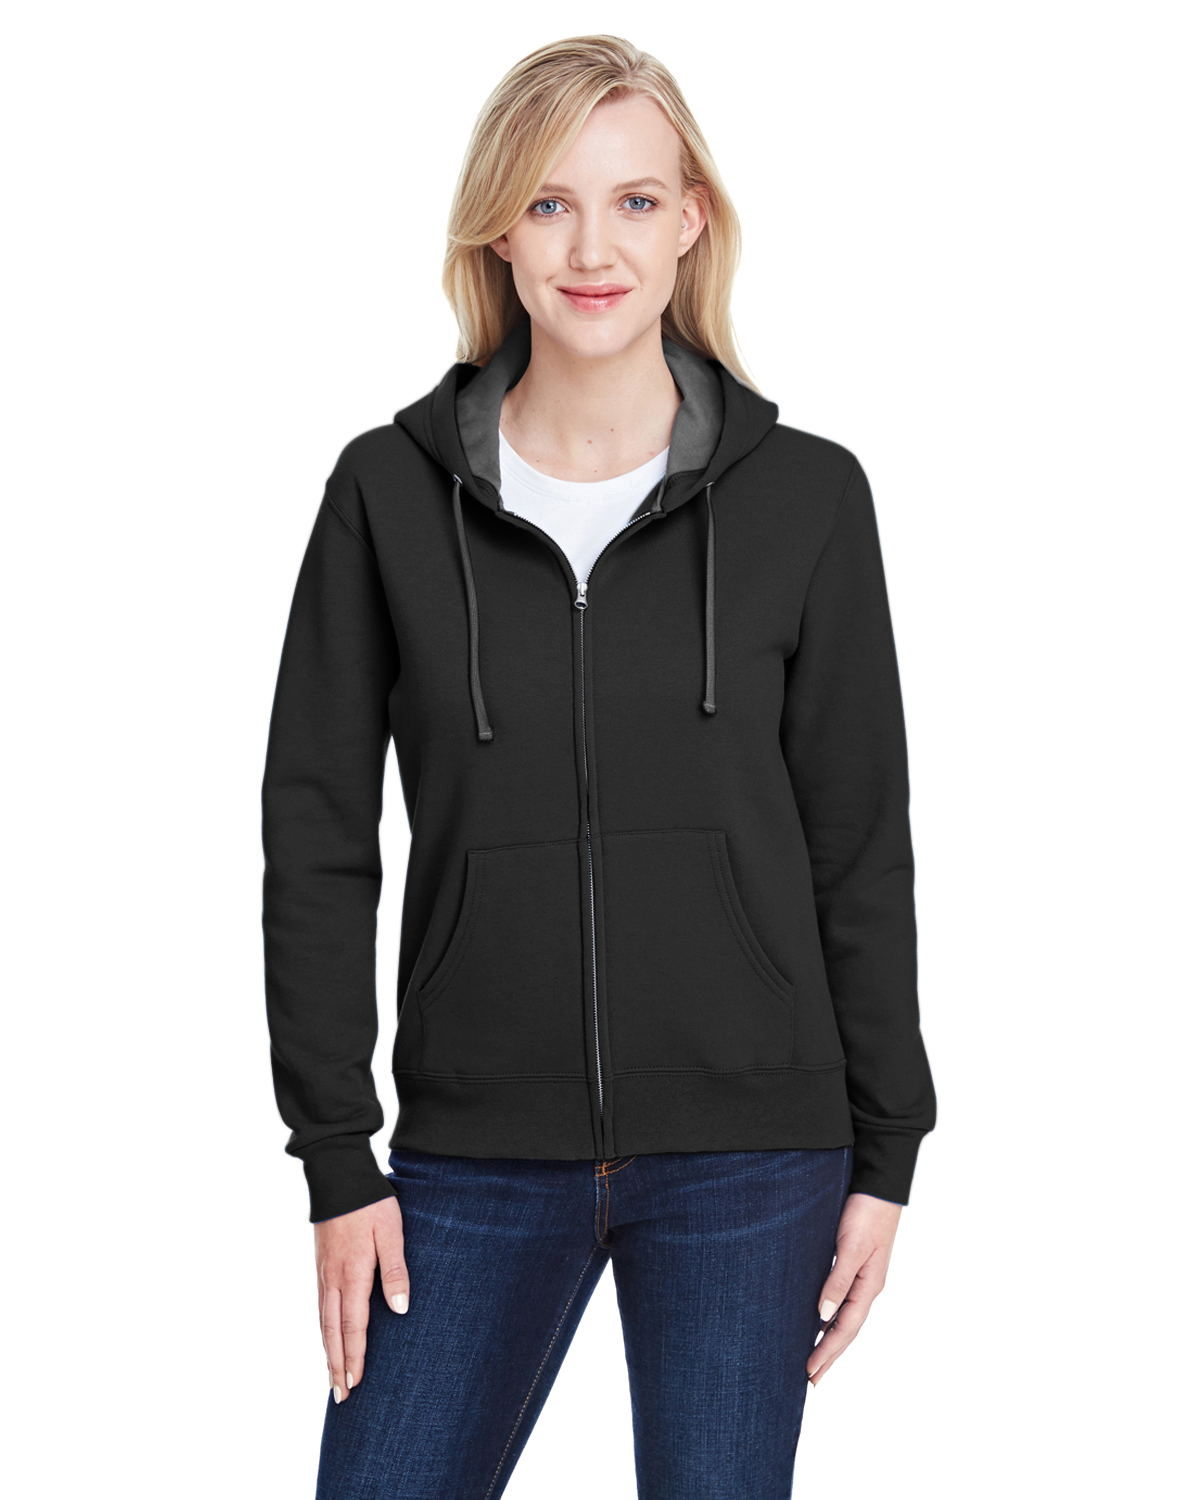 Jockey Ladies Full Zip Hooded Sweater 58080 from $14.71